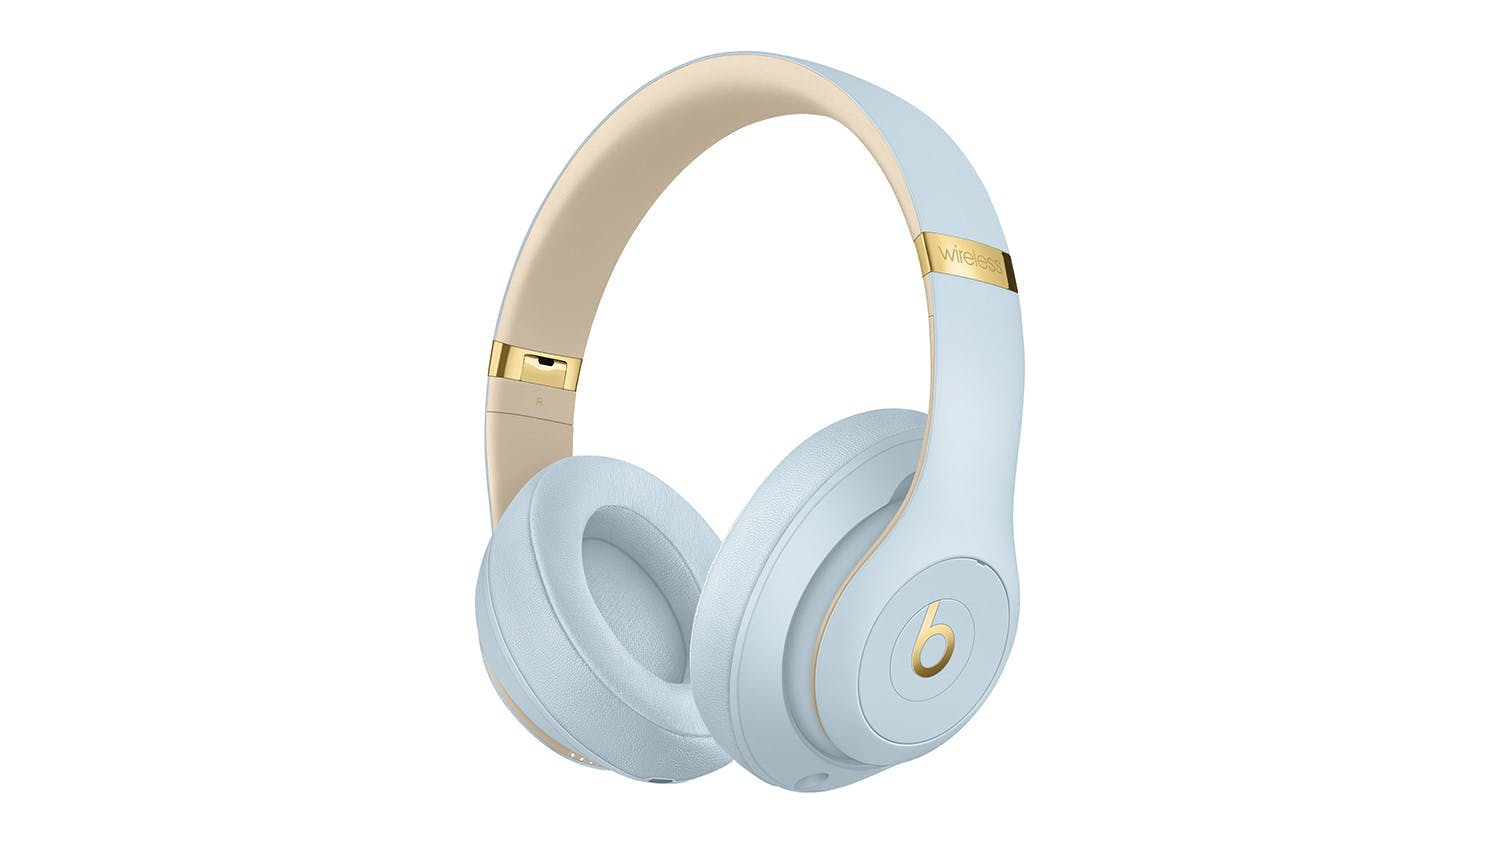 Beats Studio3 Skyline Wireless Over-Ear Headphones - Crystal Blue